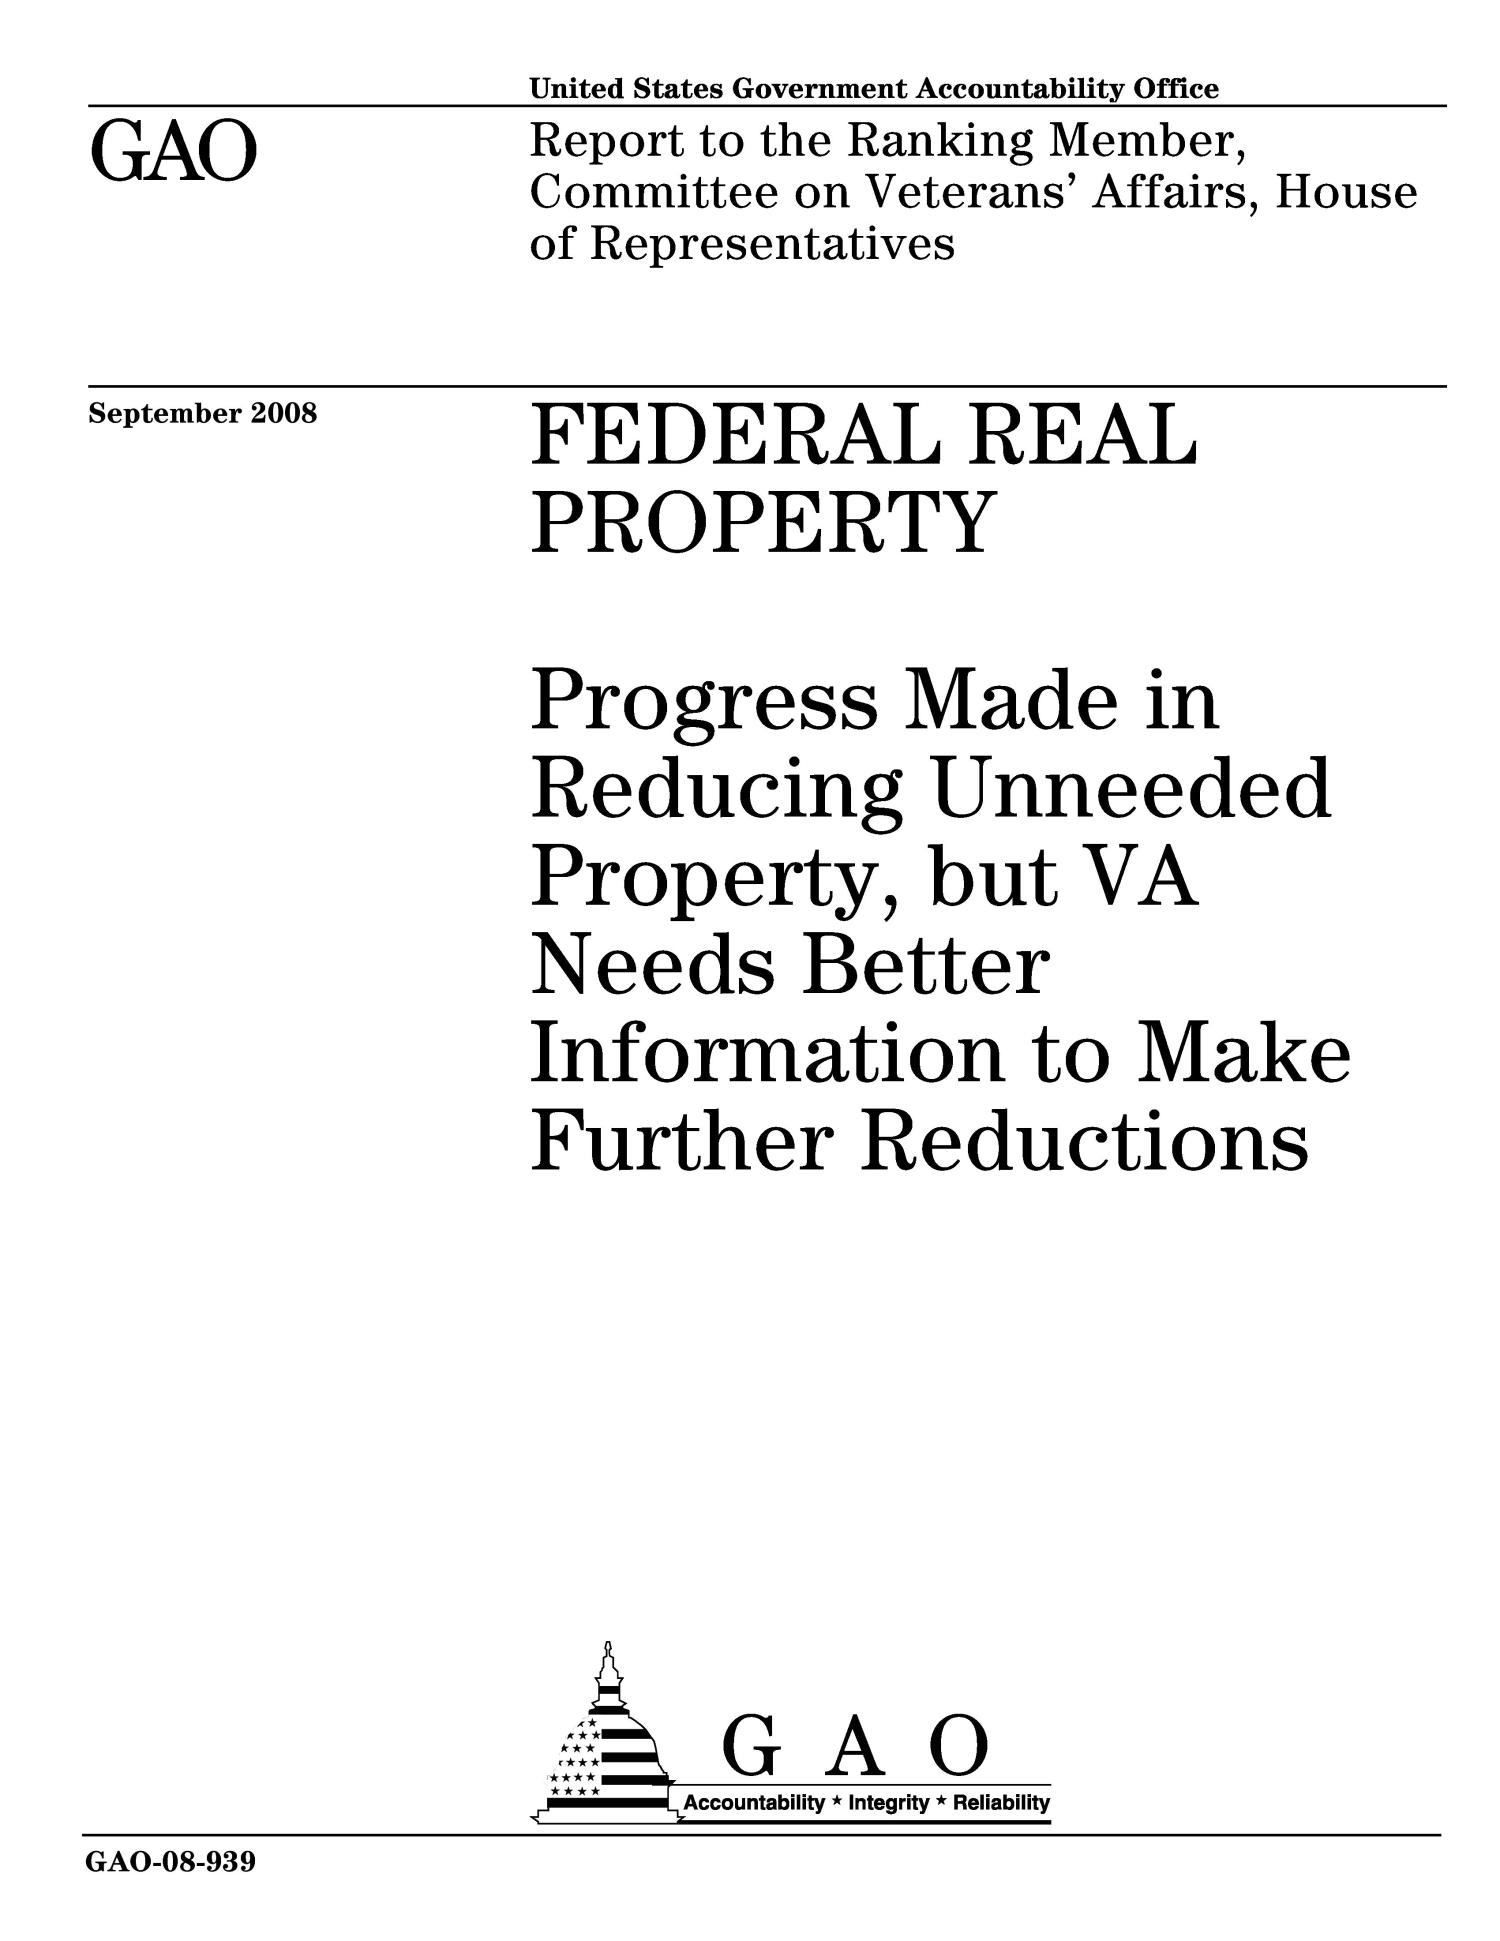 Federal Real Property: Progress Made in Reducing Unneeded Property, but VA Needs Better Information to Make Further Reductions                                                                                                      [Sequence #]: 1 of 77